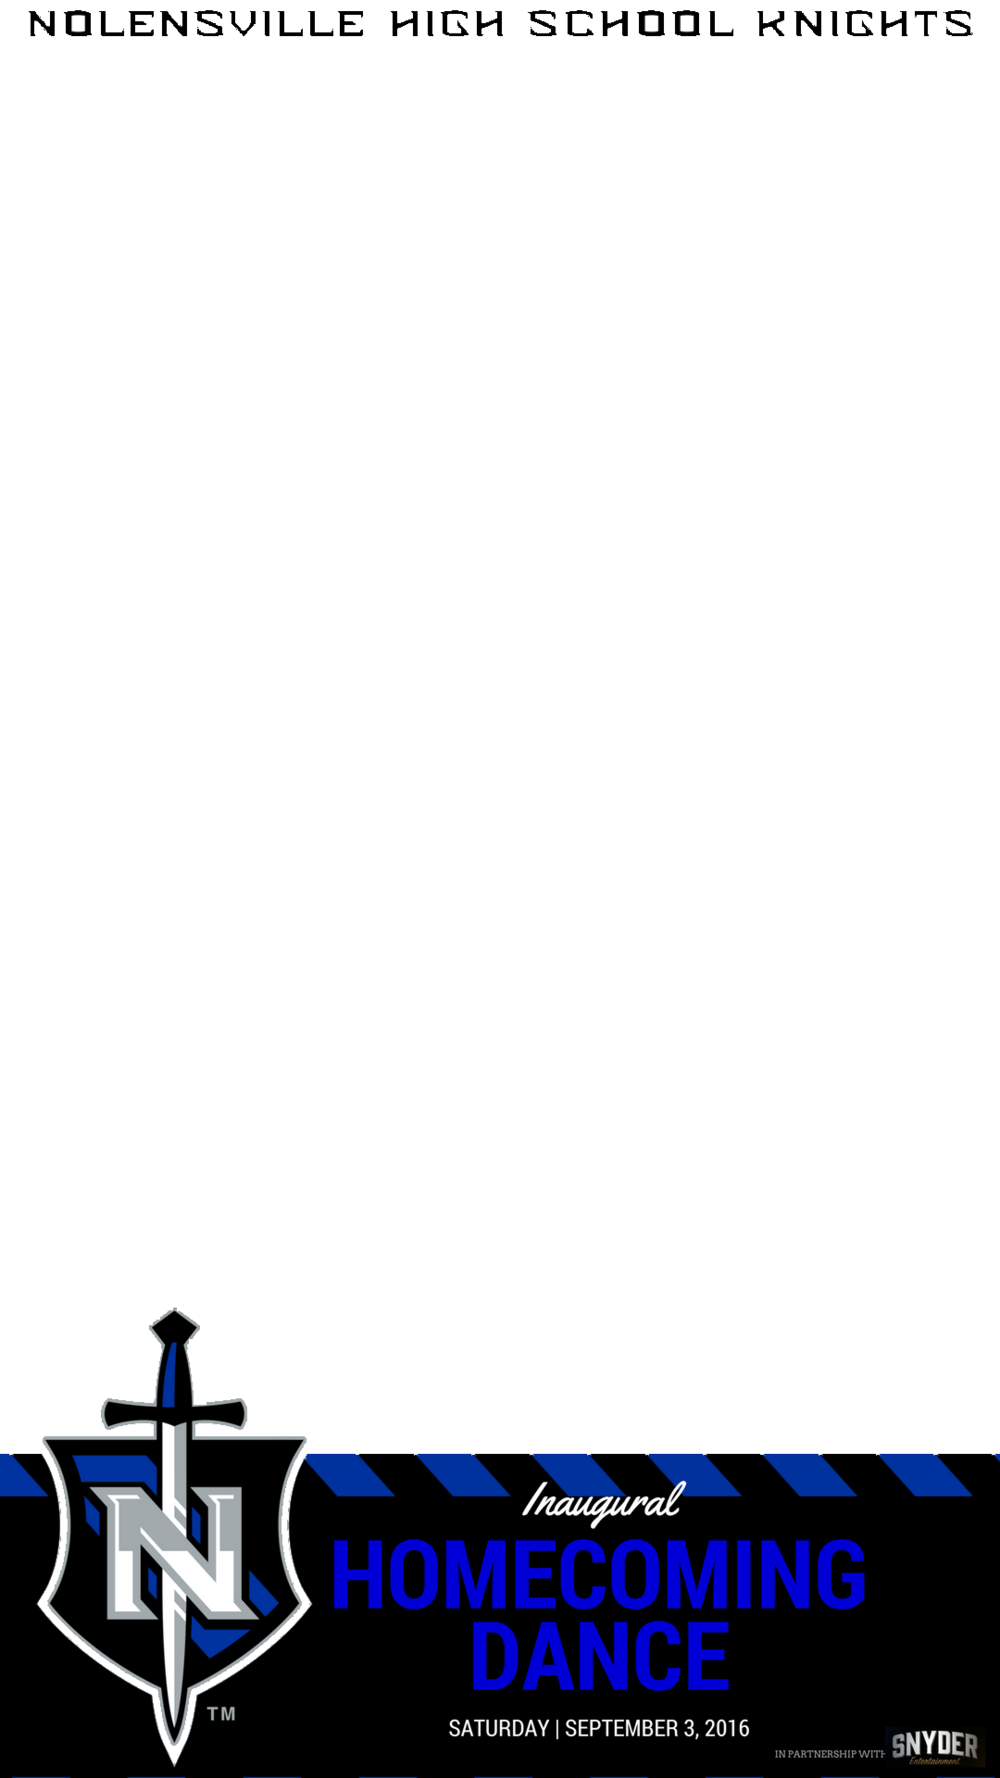 HOMECOMING DANCE Geofilter1.png